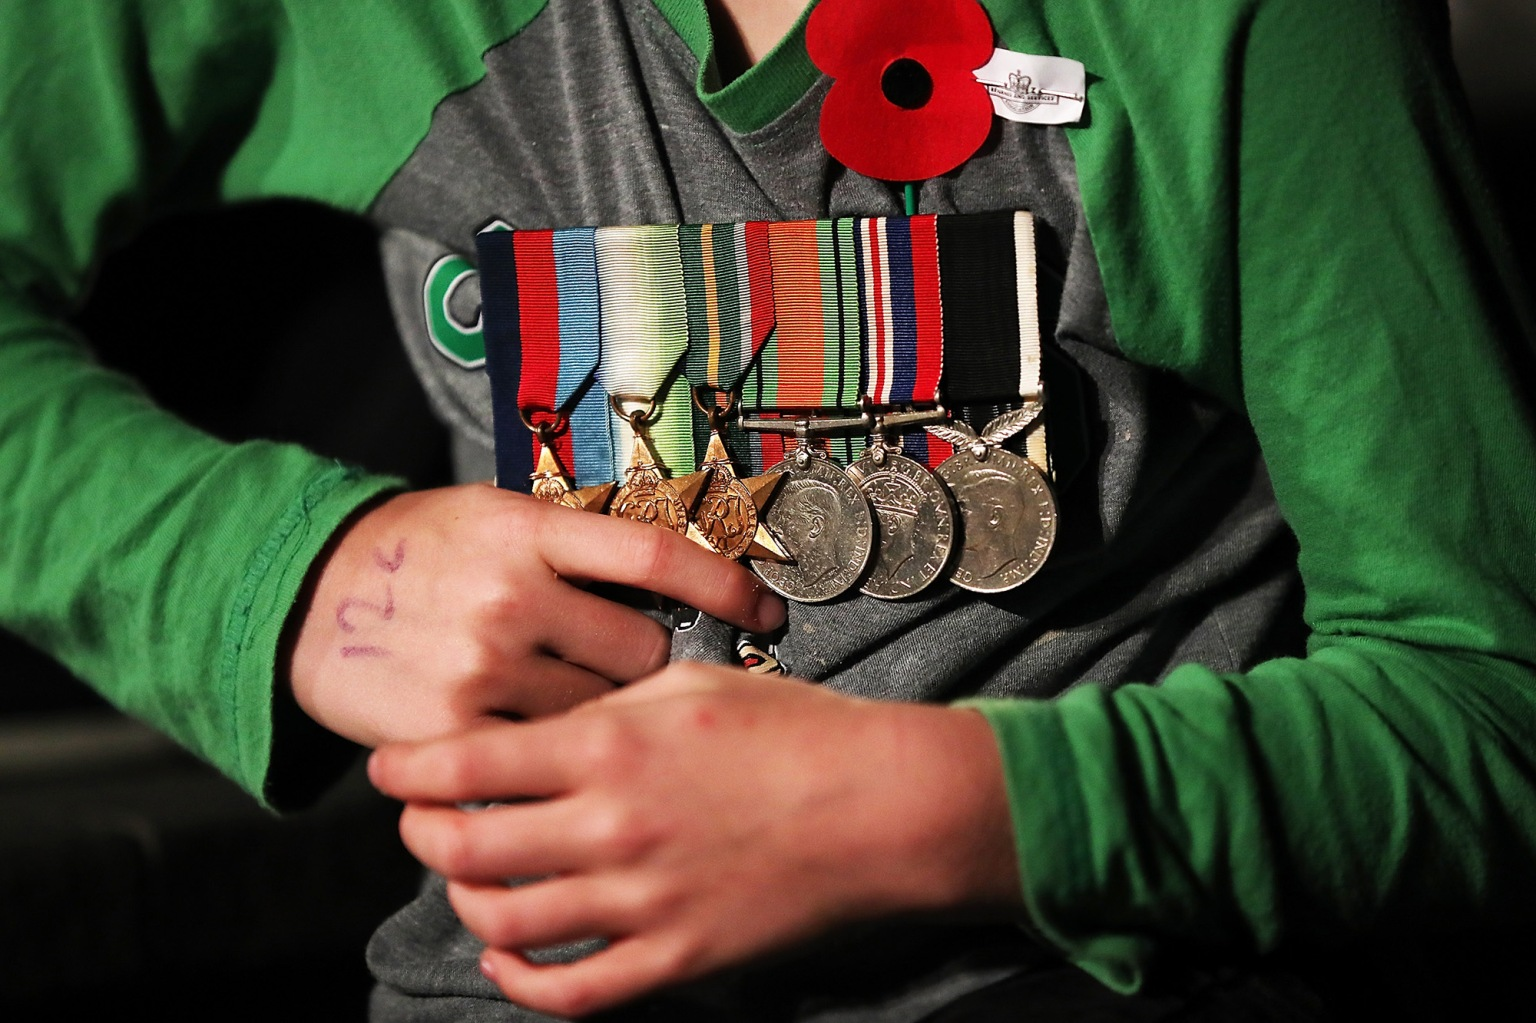 Seven-year-old George Sharp takes part in Anzac Day commemorations at the Auckland War Memorial Museum on April 25 in New Zealand. The event marks 102 years since the Australian and New Zealand Army Corp (ANZAC) landed on the shores of Gallipoli during World War I, a national holiday in New Zealand featuring a dawn service timed to the original landing. Fiona Goodall/Getty Images